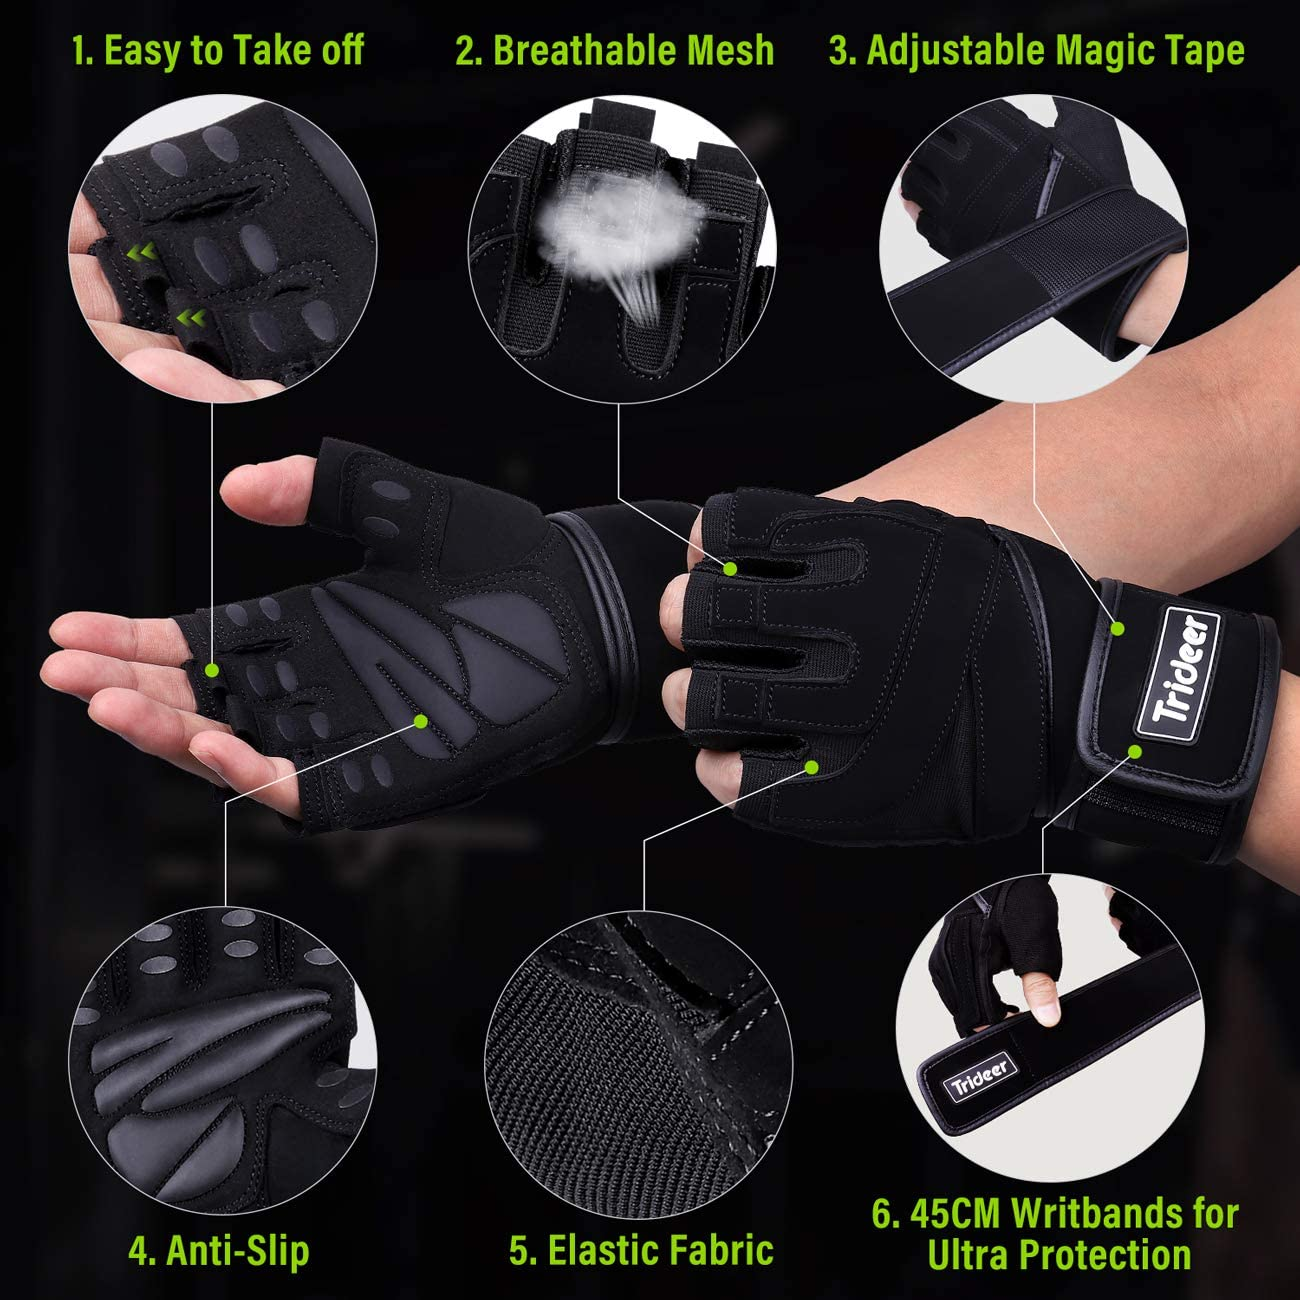 Trideer Workout Gloves Men, Gym Gloves with Wrist Support, Padded Weight Lifting Gloves Men for Fitness, Cross Training : Sports & Outdoors